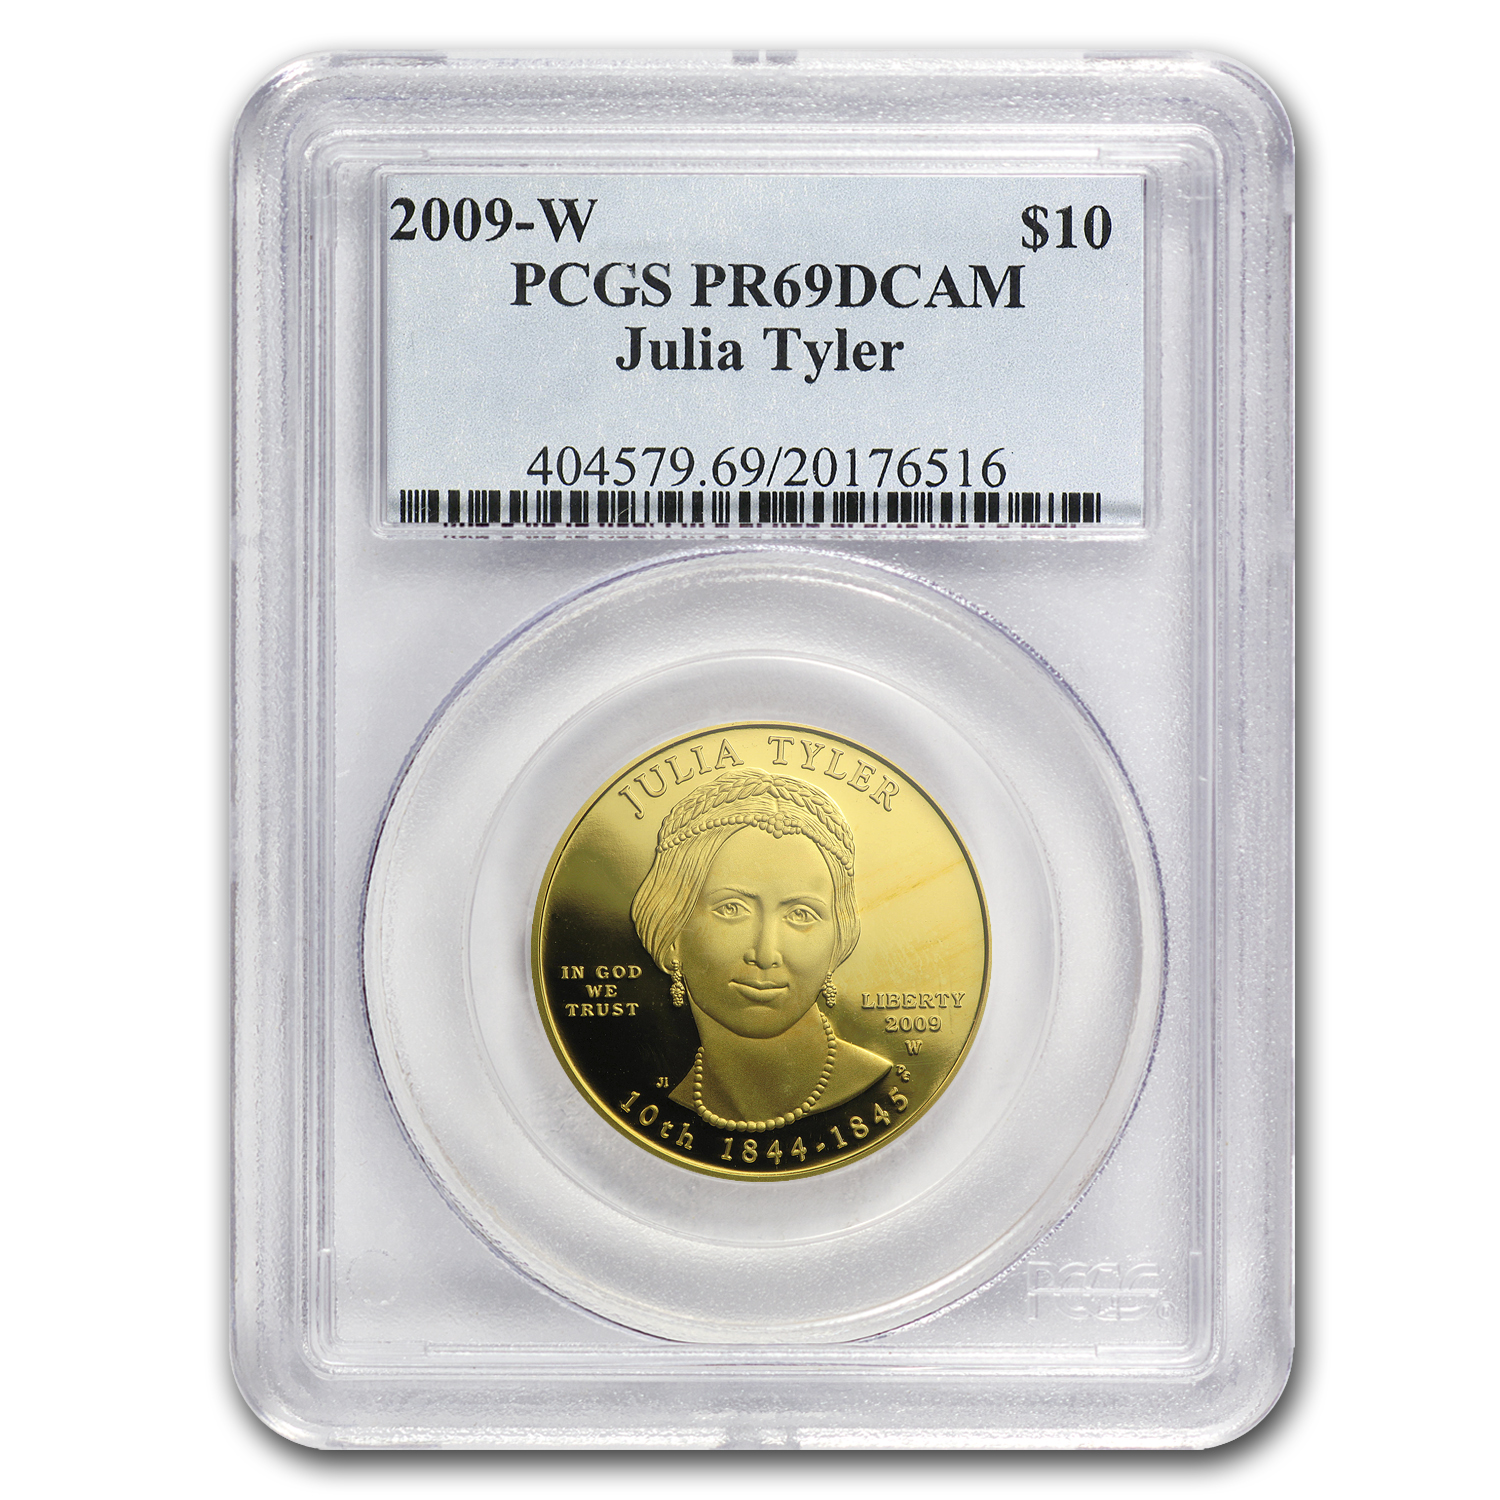 2009-W 1/2 oz Proof Gold Julia Tyler PR-69 PCGS DCAM